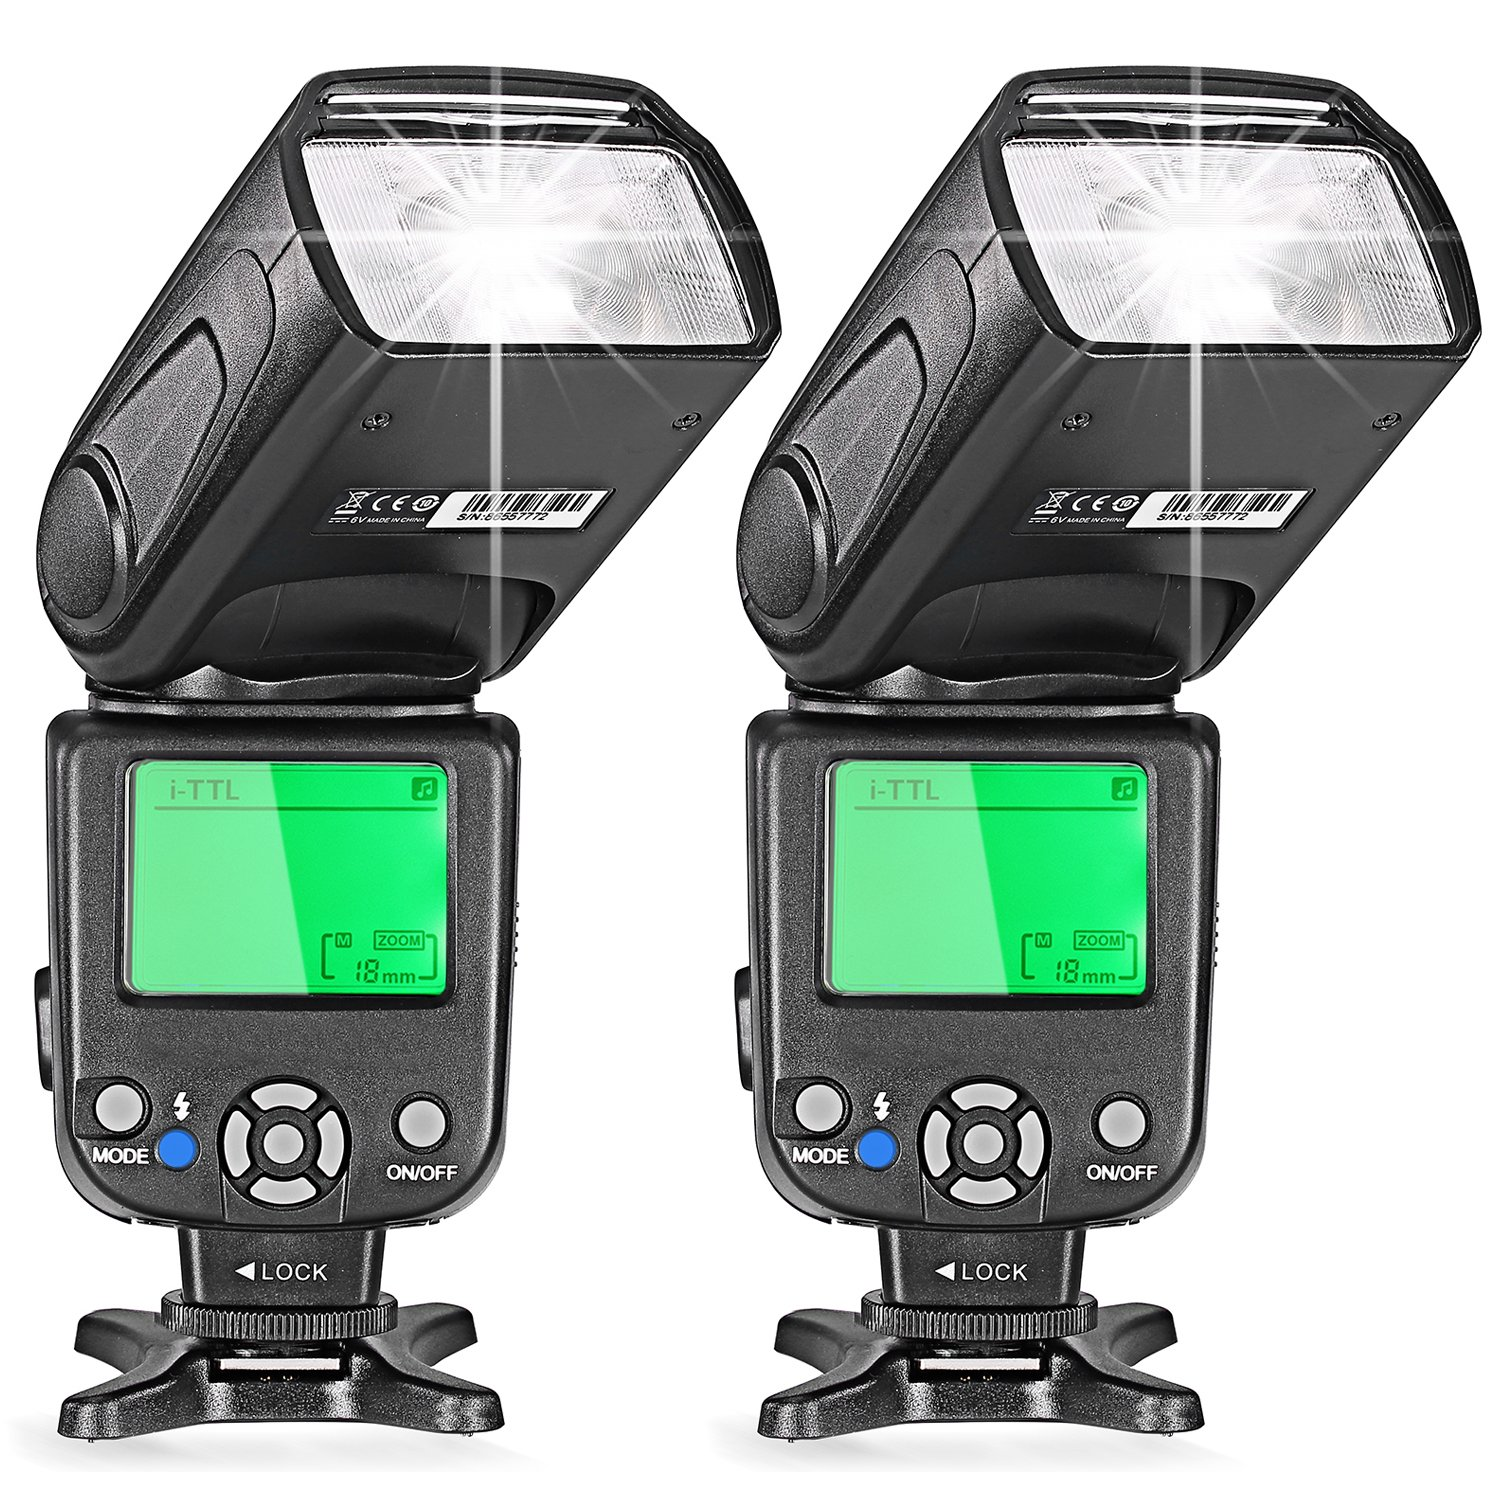 Neewer Two I-TTL Flash Speedlite for Nikon DSLR Camera Such as D7200 D7100 D7000 D5200 D5100 D5000 D3000 D3100 D300 D700 D600 D90 D80 D70 D70S D60 D50(NW-562) 90087979